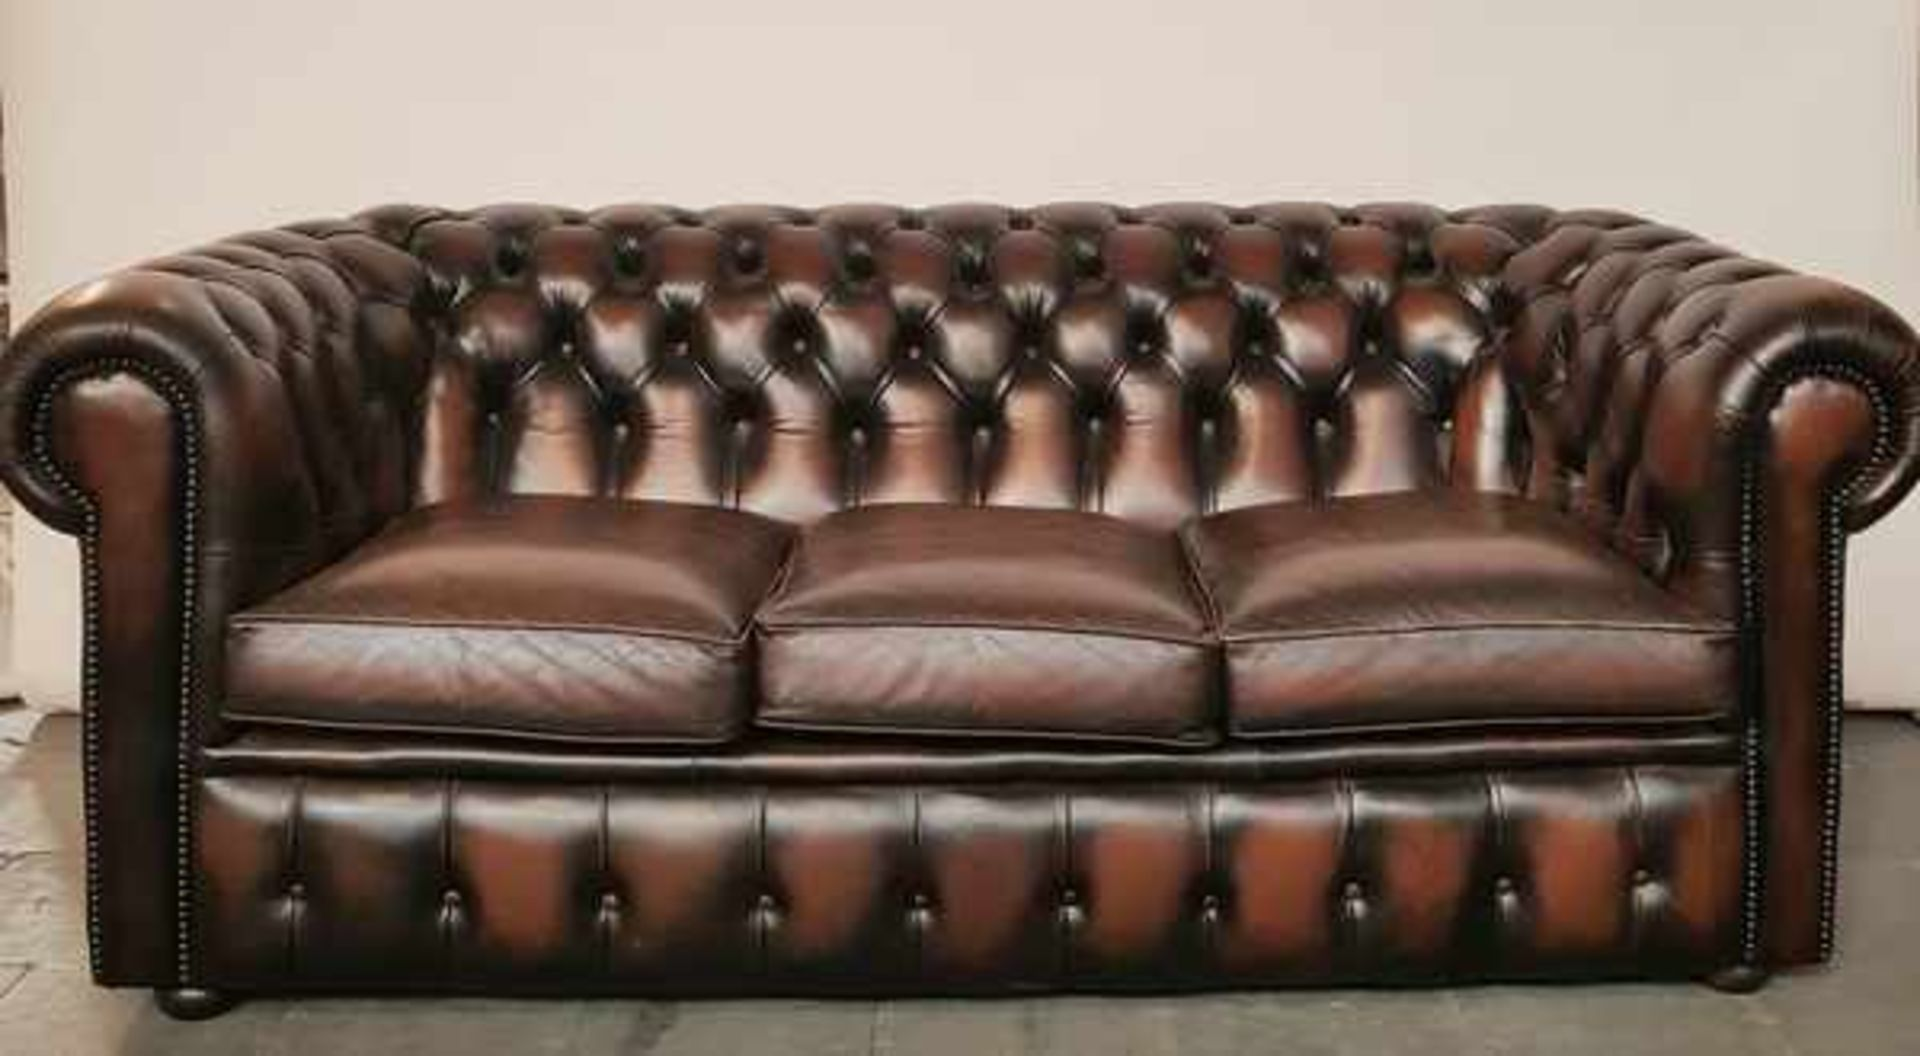 (Curiosa) Chesterfield stijl 3-zits bank